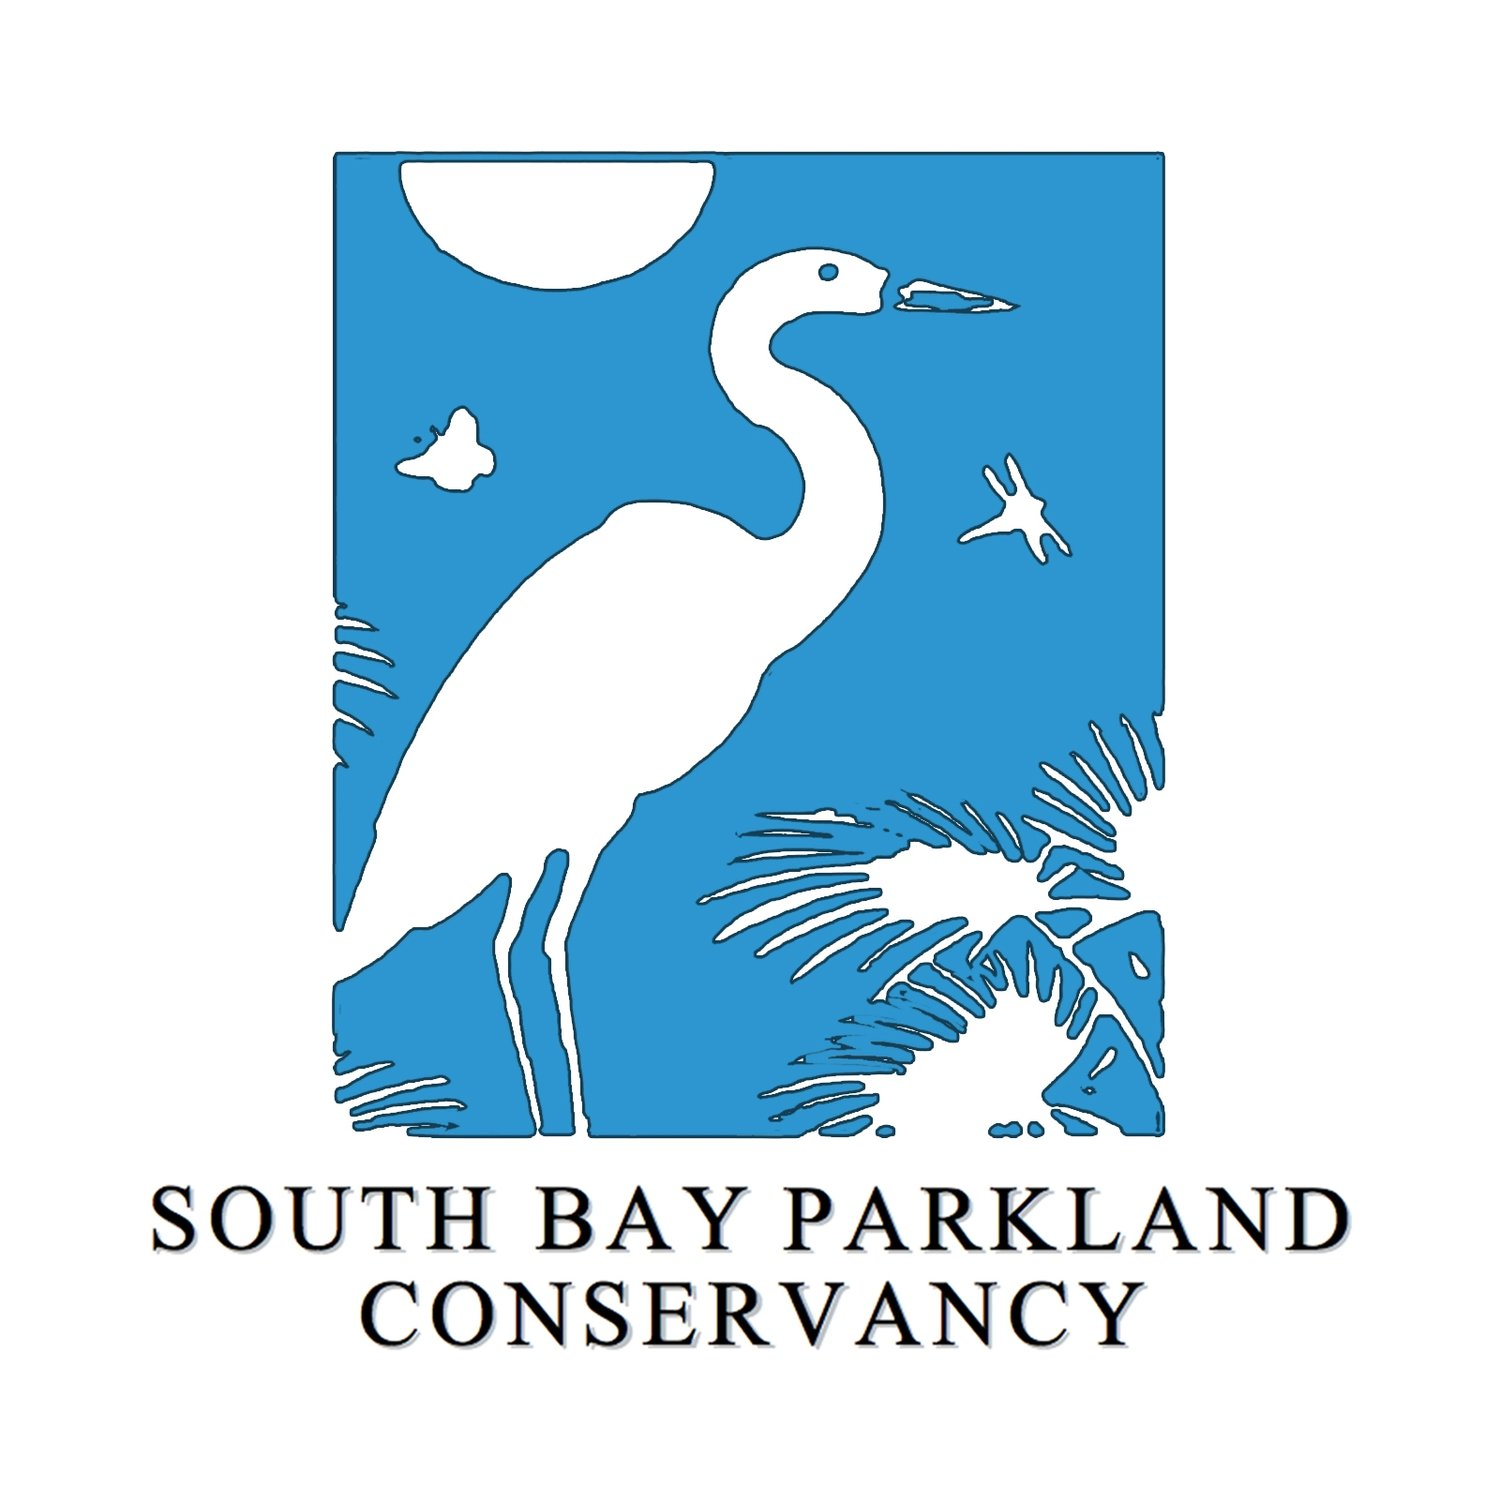 South Bay Parkland Conservancy